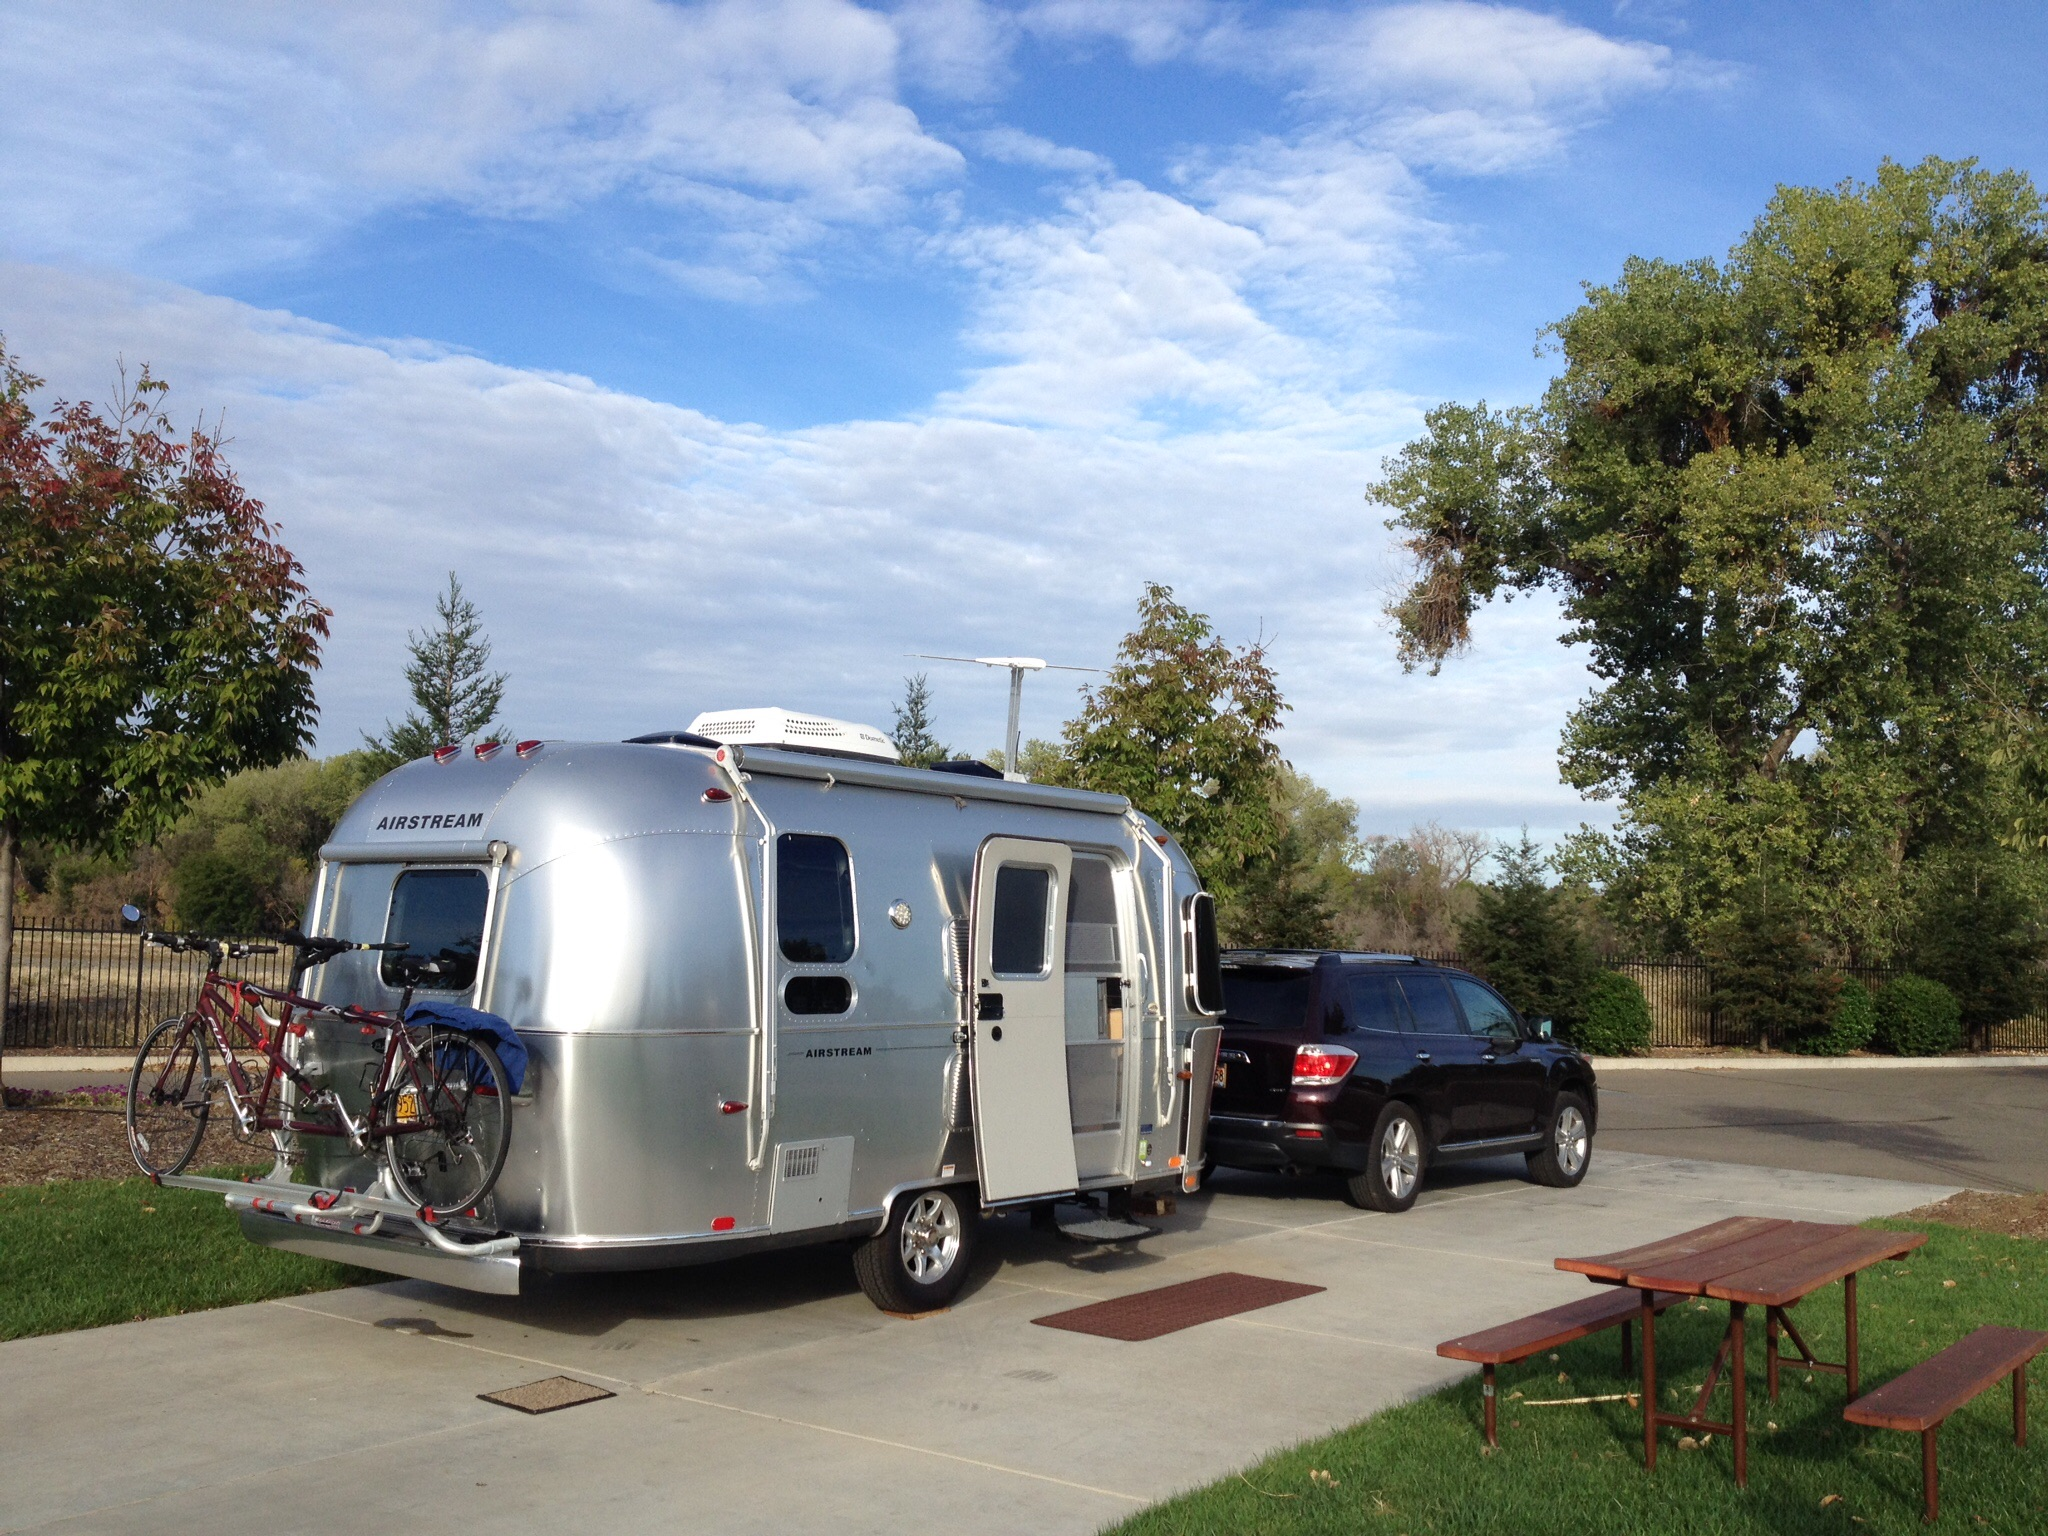 Heading Home At Durango Rv In Red Bluff, Ca